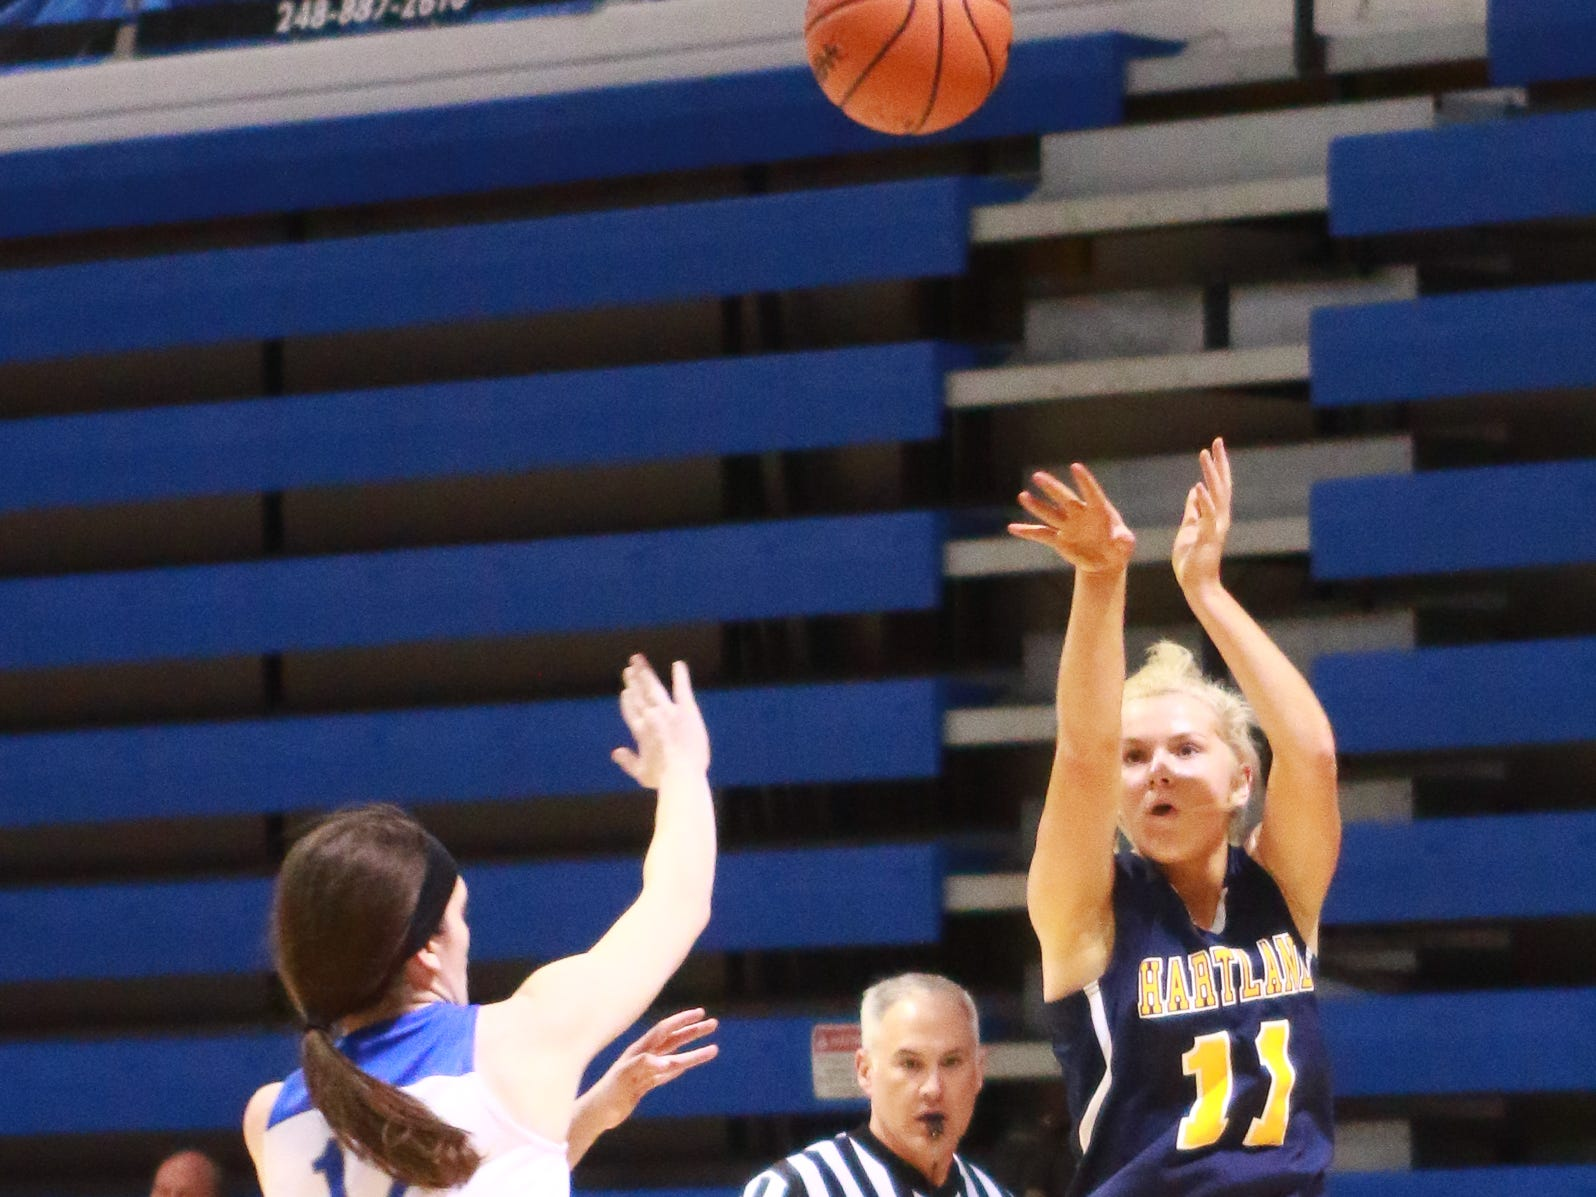 Hartland's Amanda Roach launches a 3-point attempt in a 50-46 victory over Walled Lake Western in a regional championship basketball game at Lakeland on Wednesday, March 13, 2019.